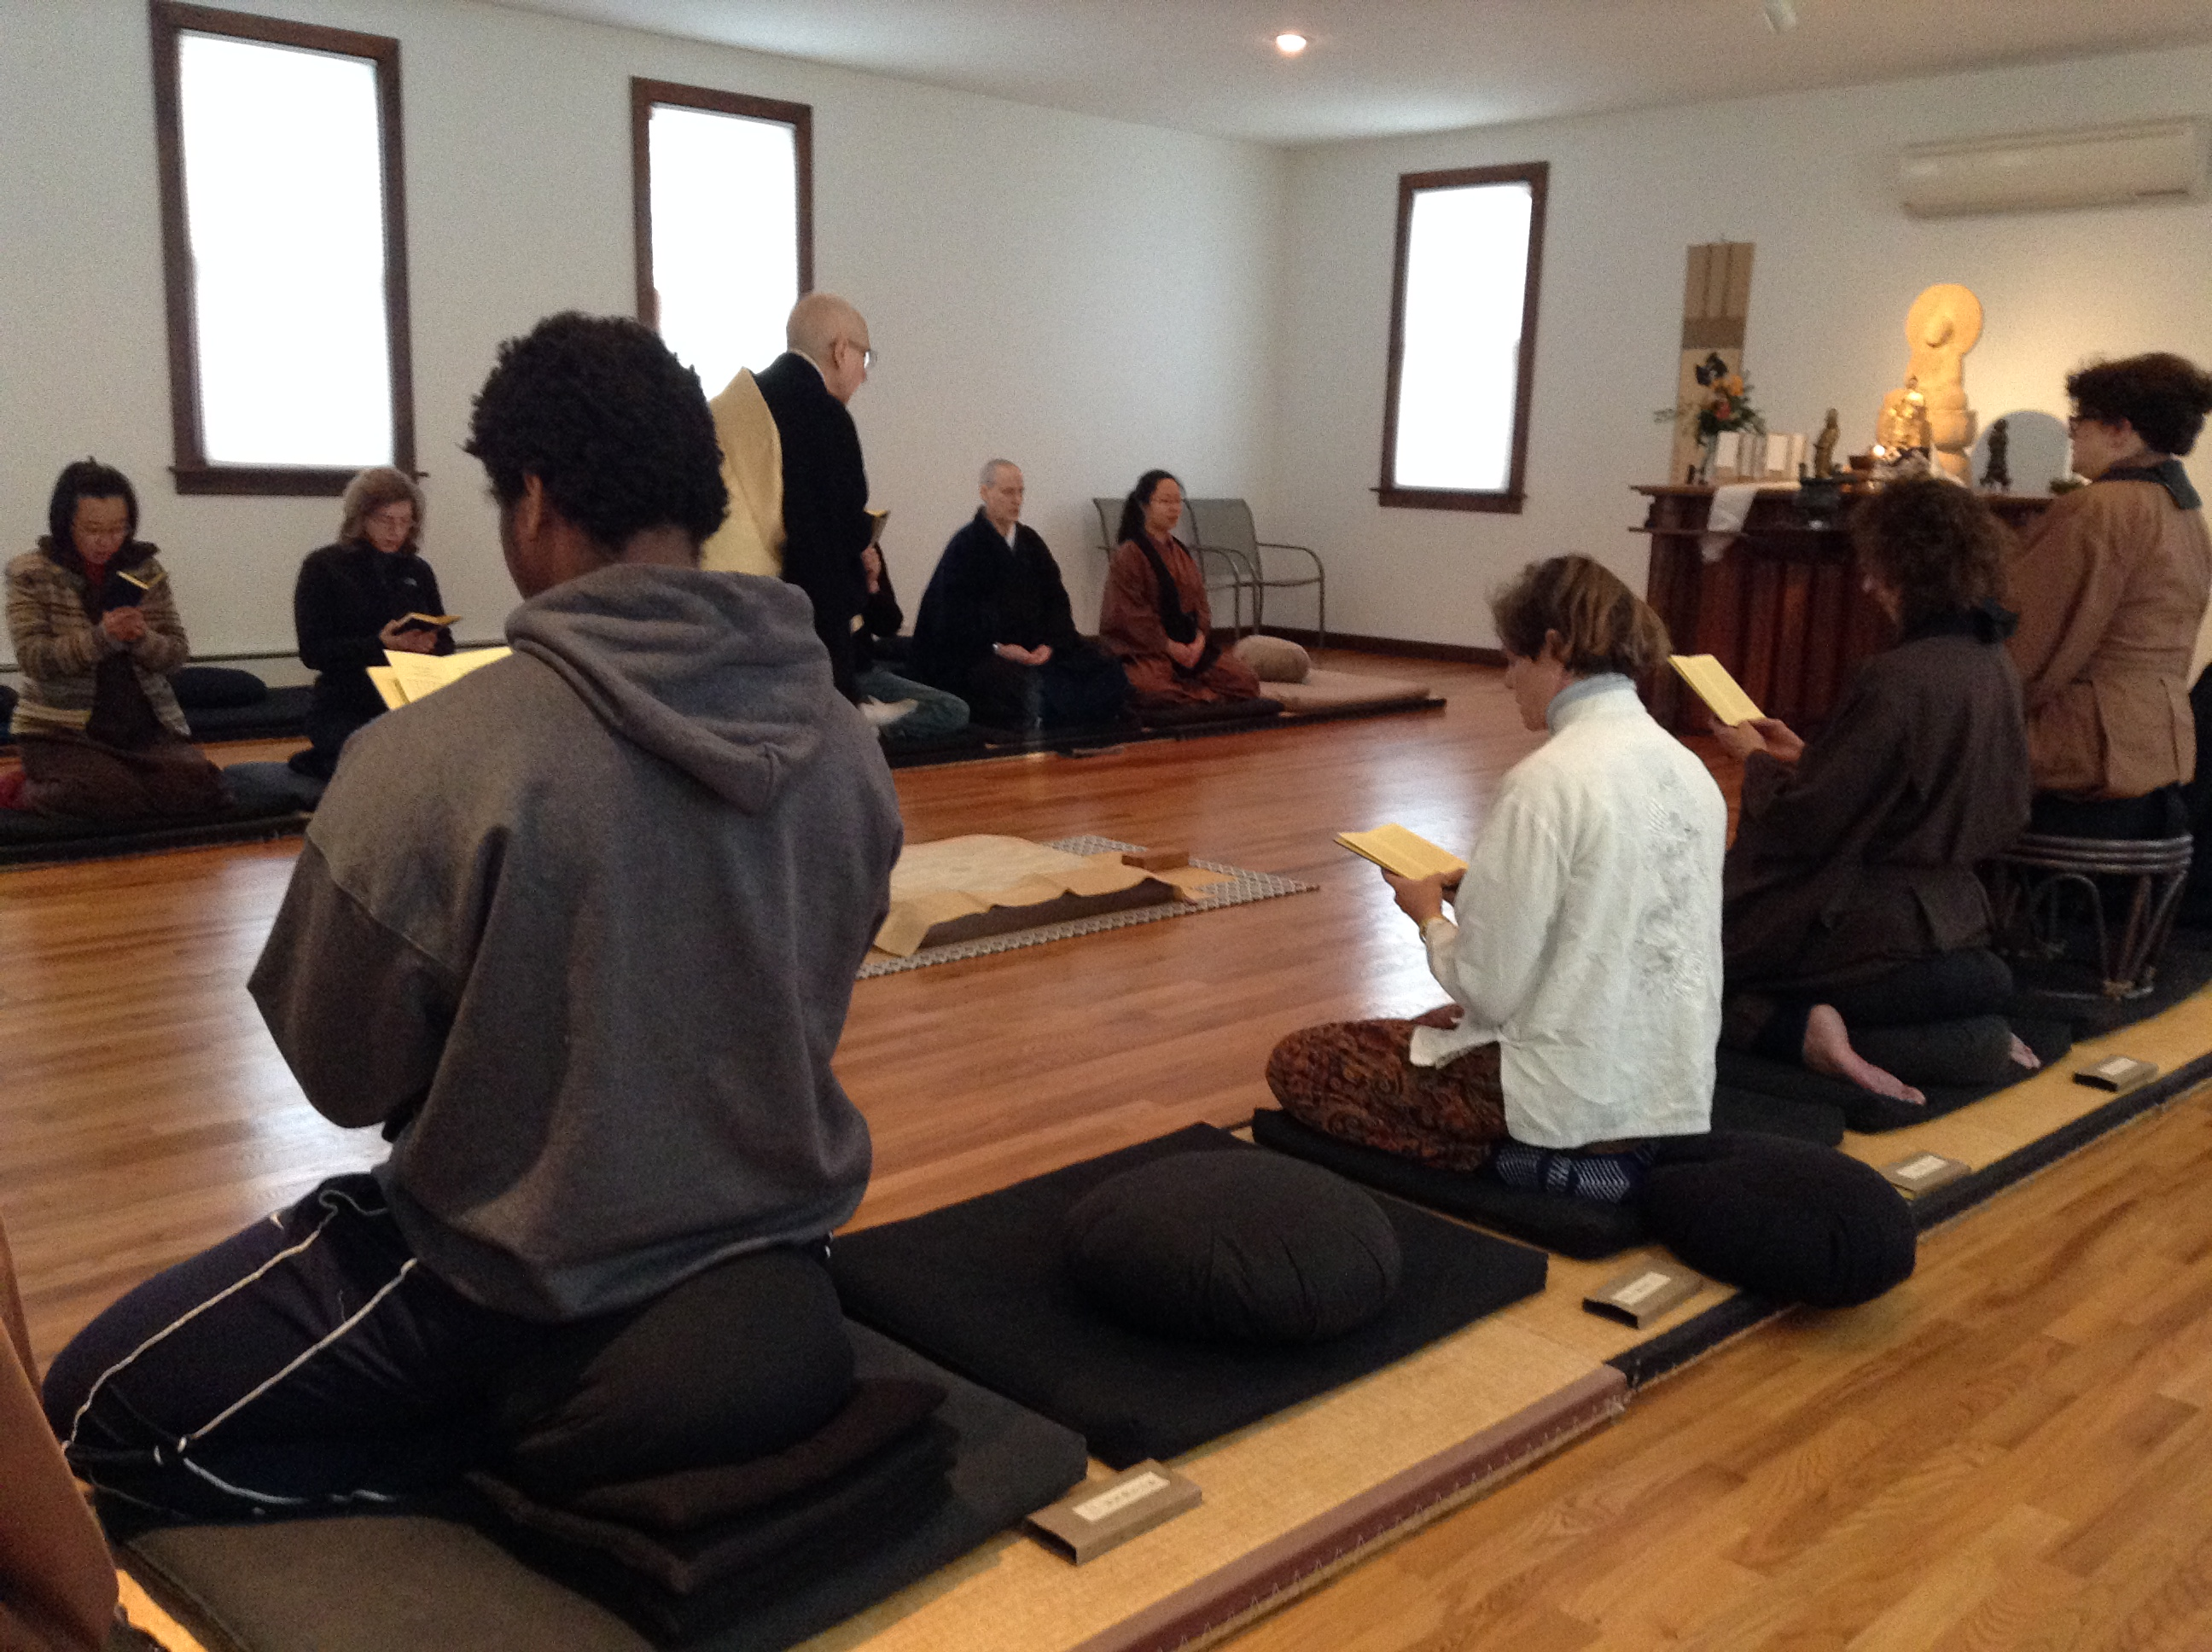 Zen Center visit - joining in meditation